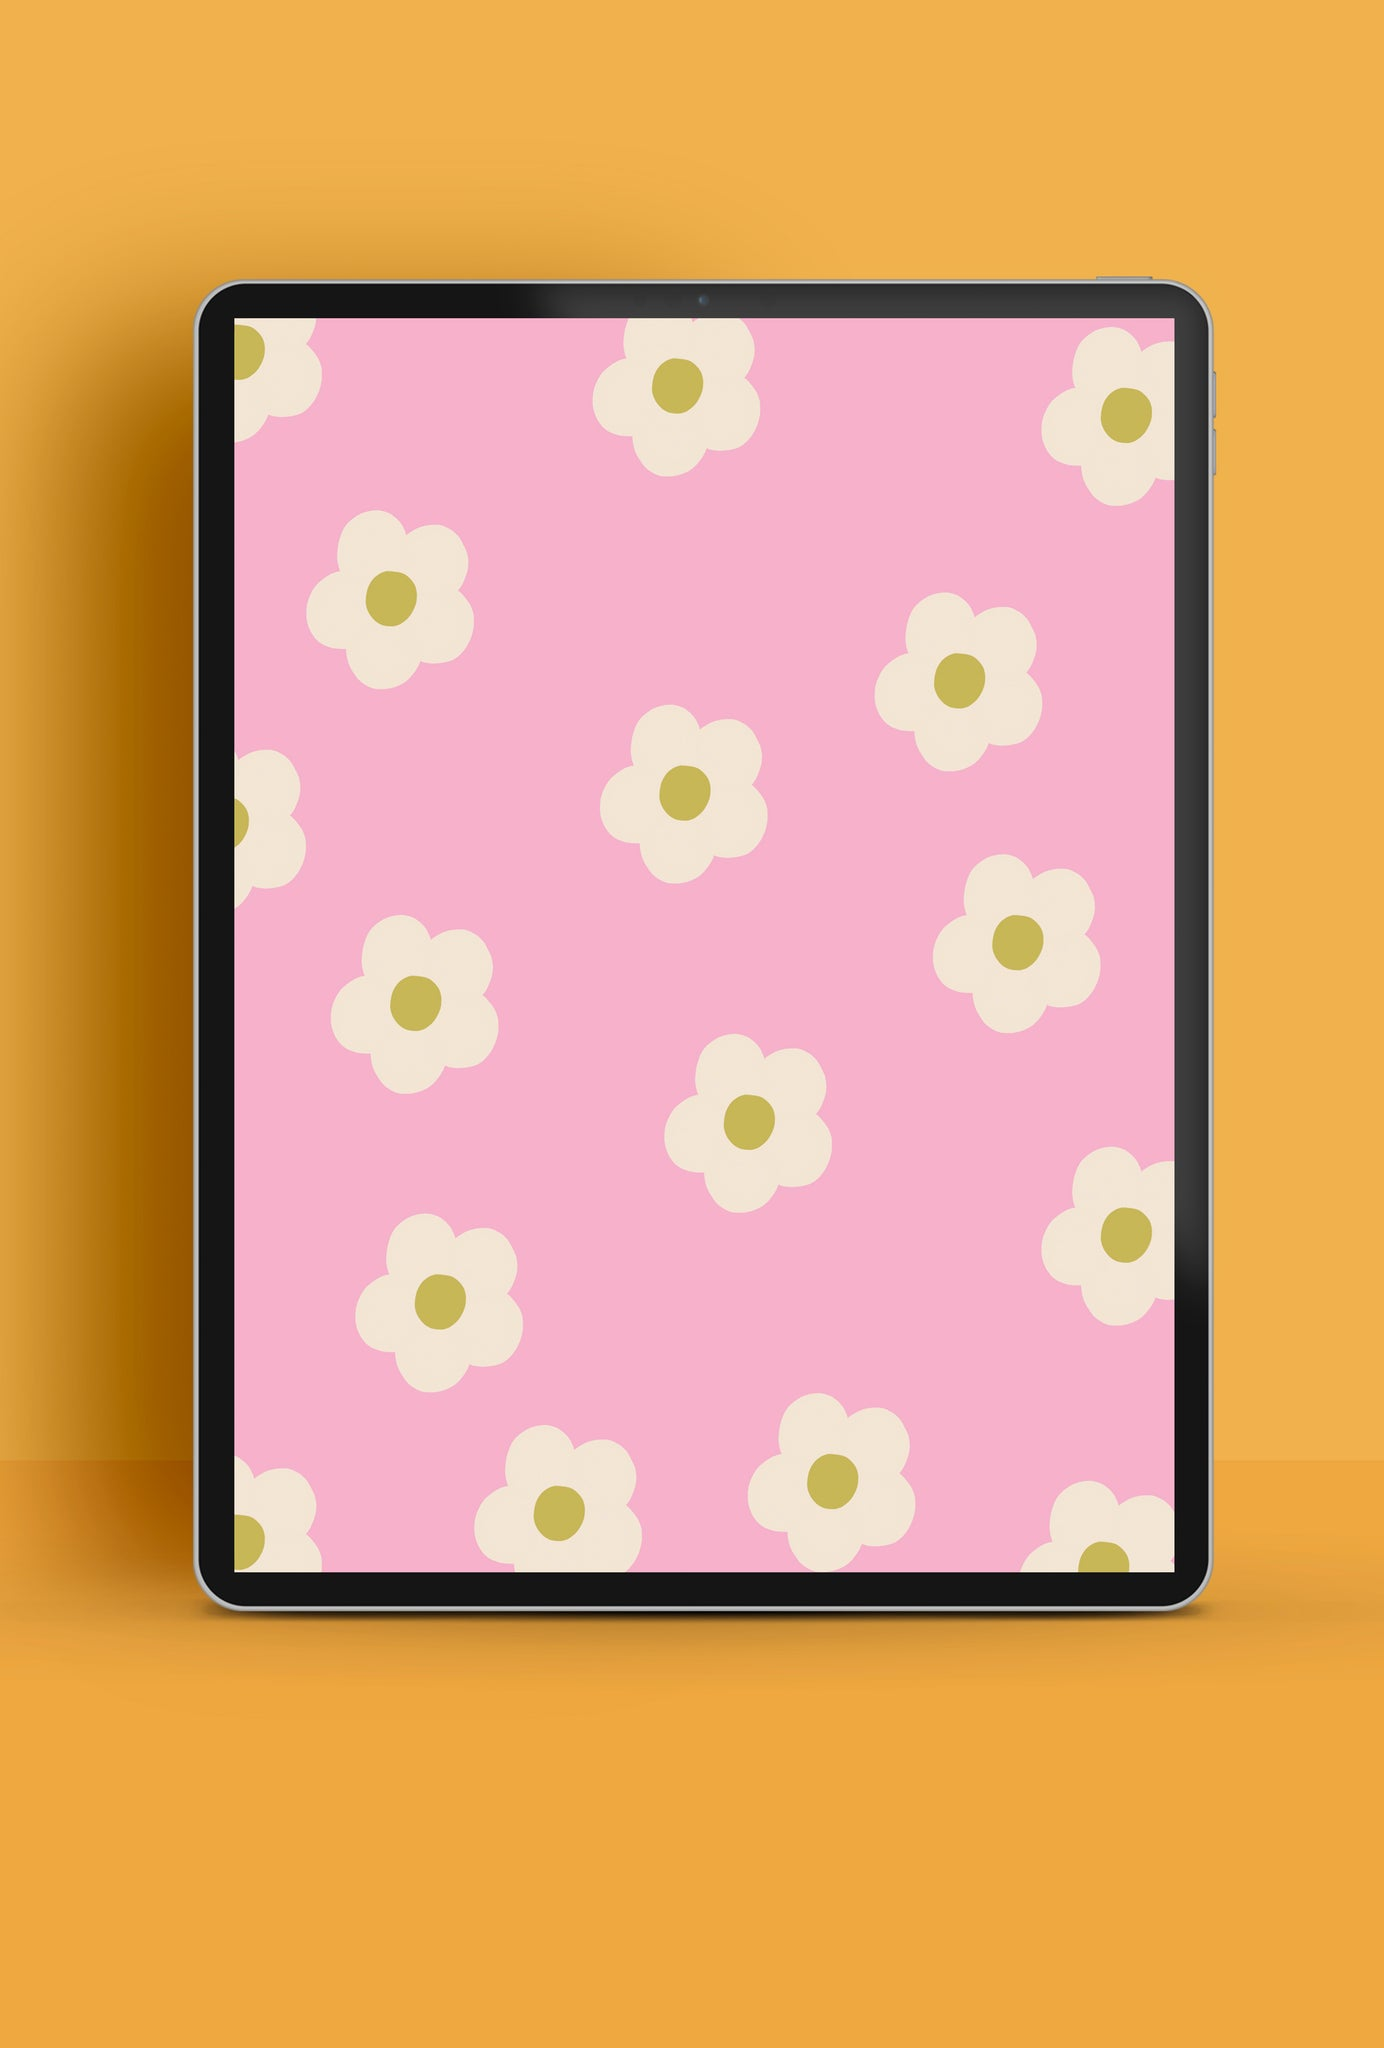 Free daisy HD pattern tablet wallpaper | Raspberry Blossom